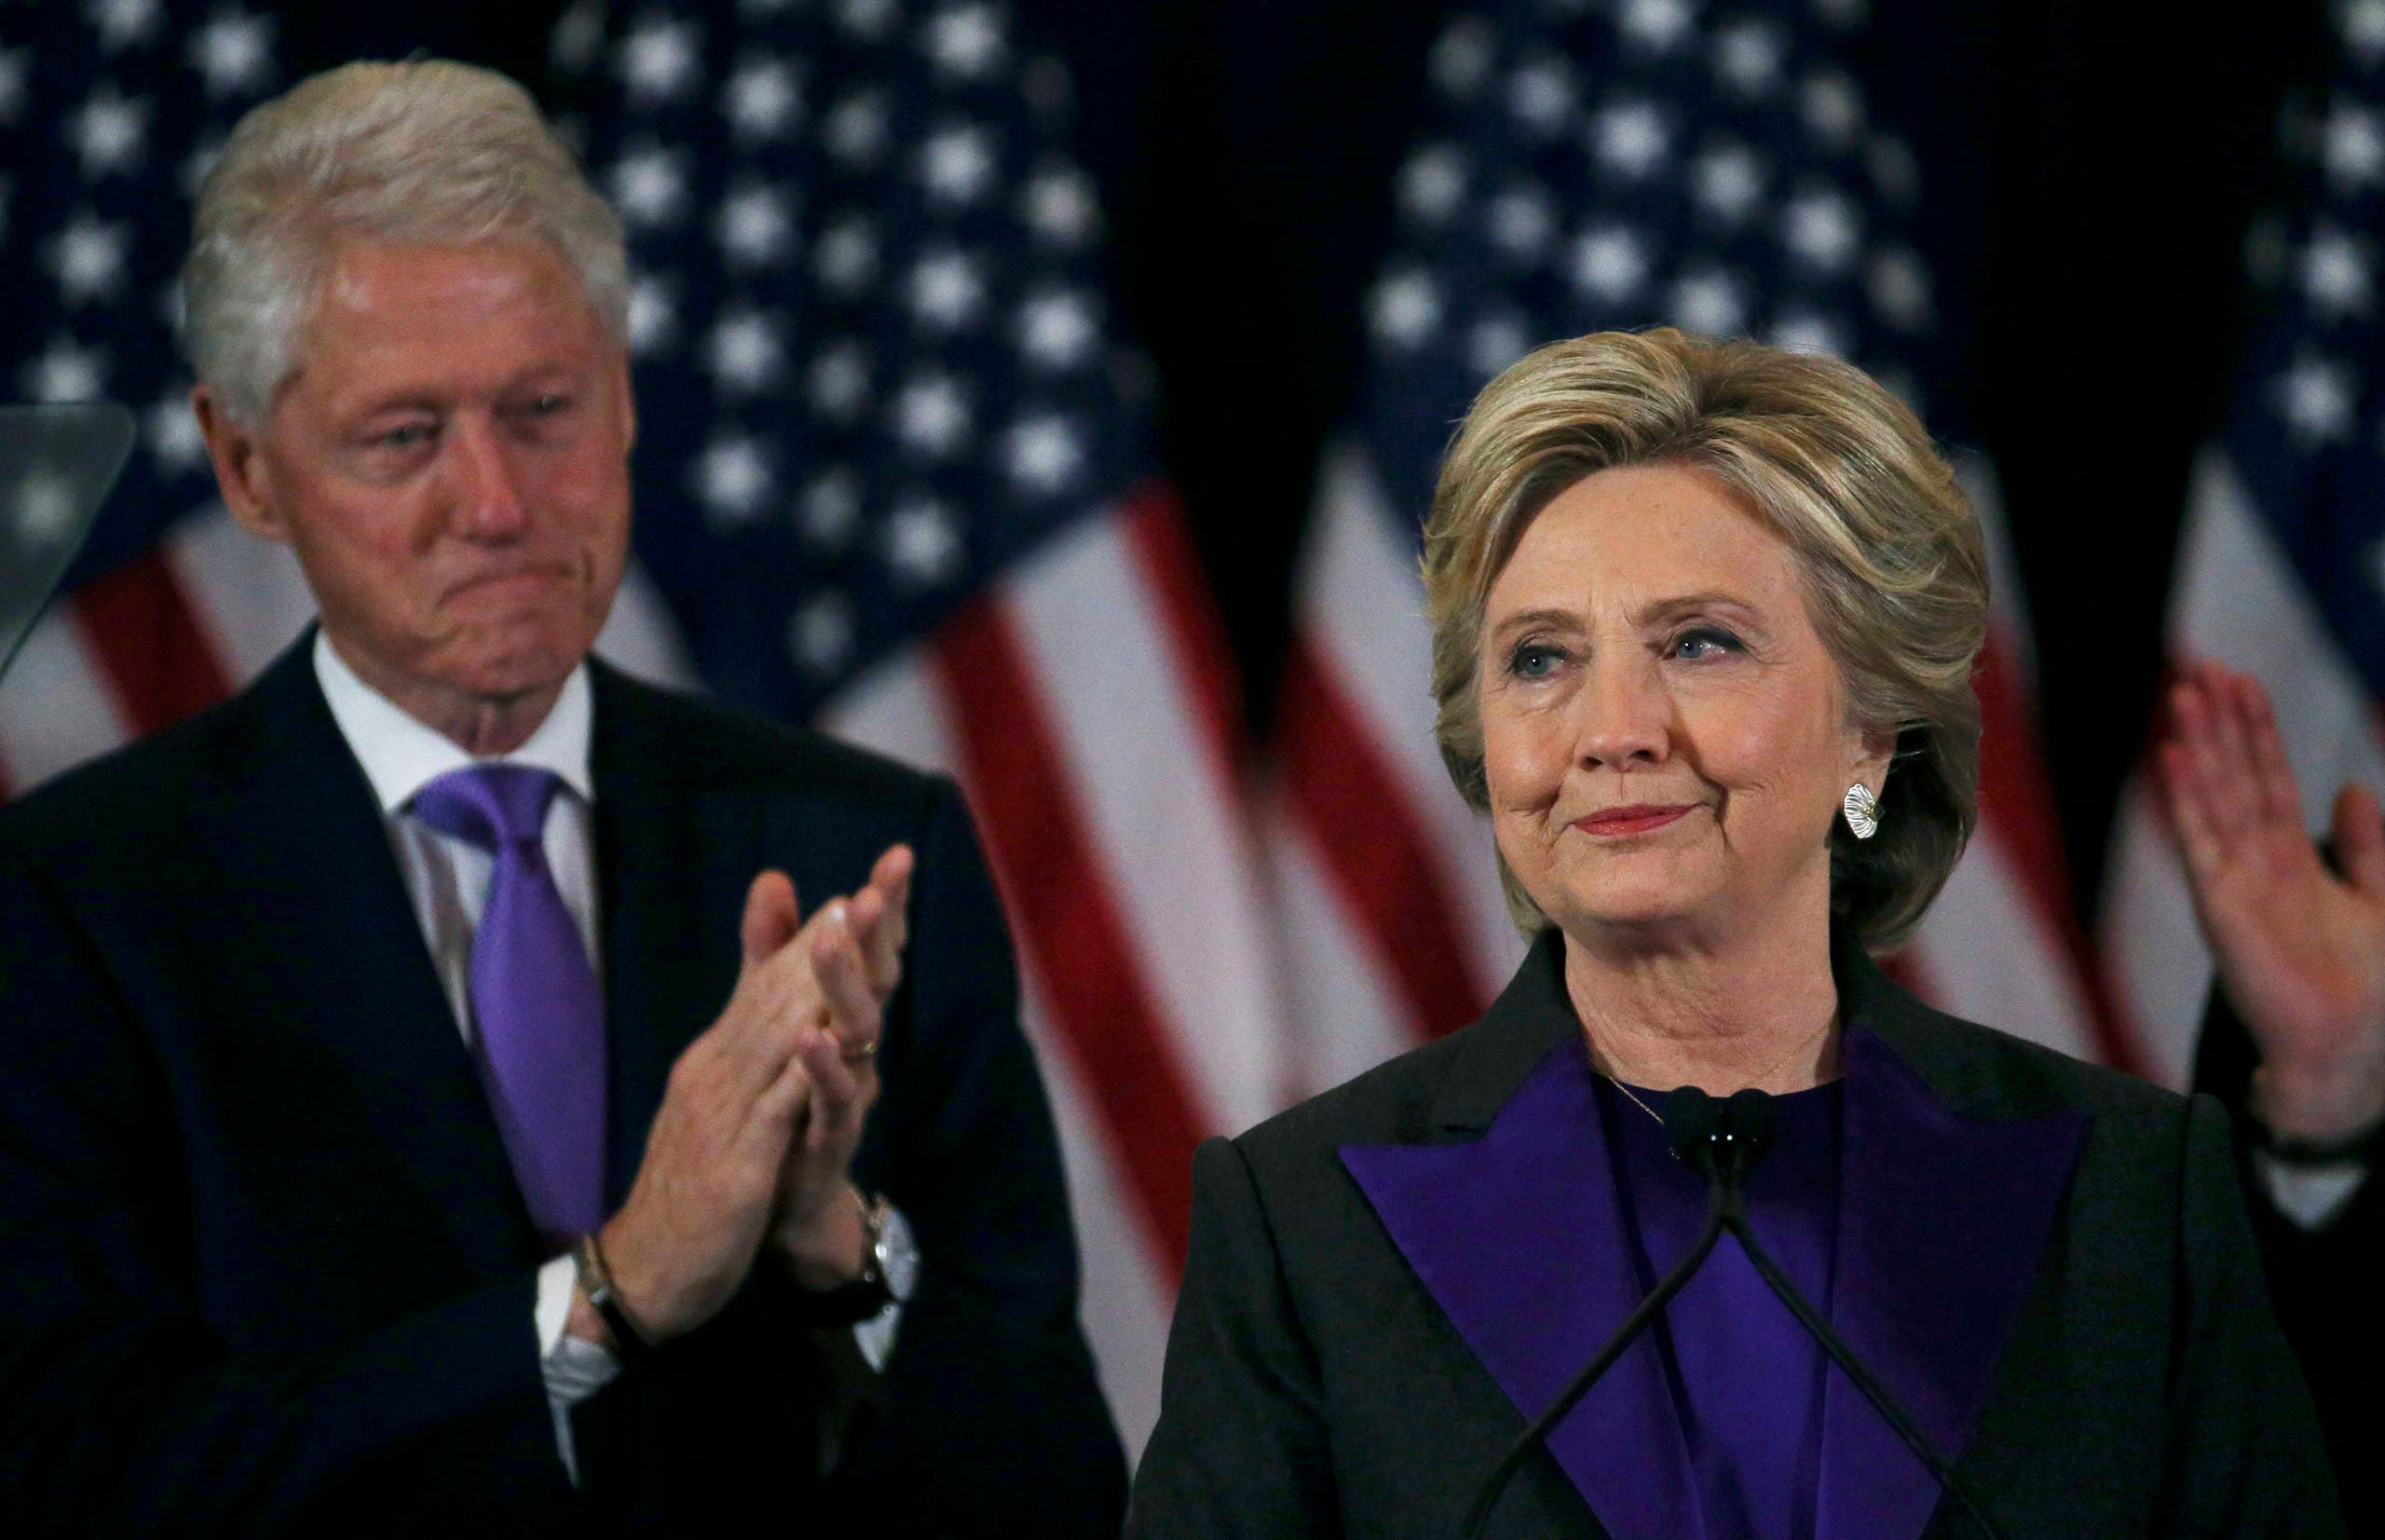 Hillary Clinton, accompanied by her husband former U.S. President Bill Clinton (L), addresses her staff and supporters about the results of the U.S. election at a hotel in New York, November 9, 2016.